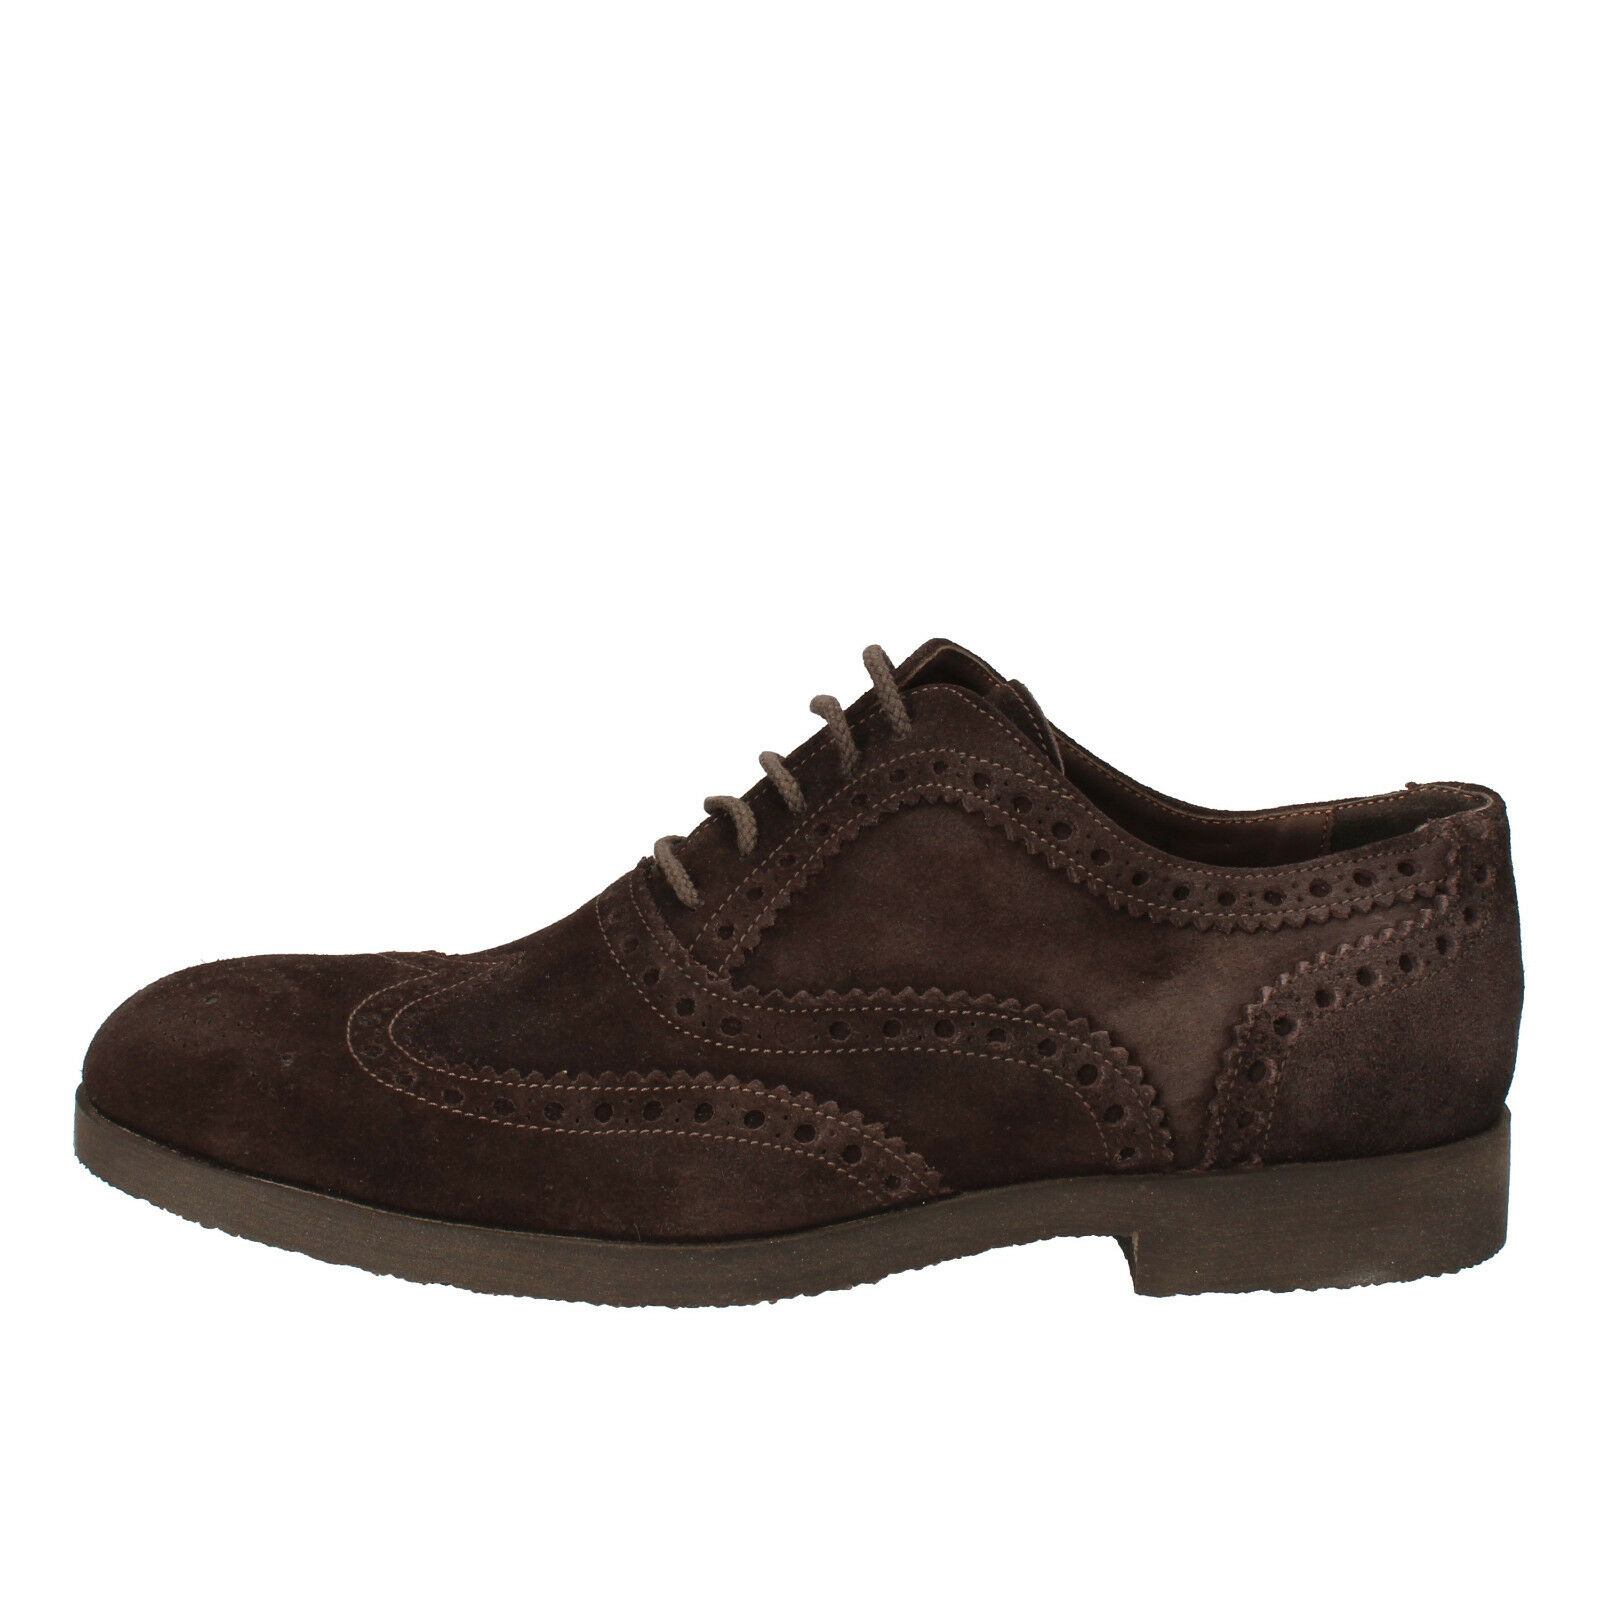 Uomo Scarpe TODAY BY CALPIERRE 10 (EU 43) elegant brown suede AD537-D